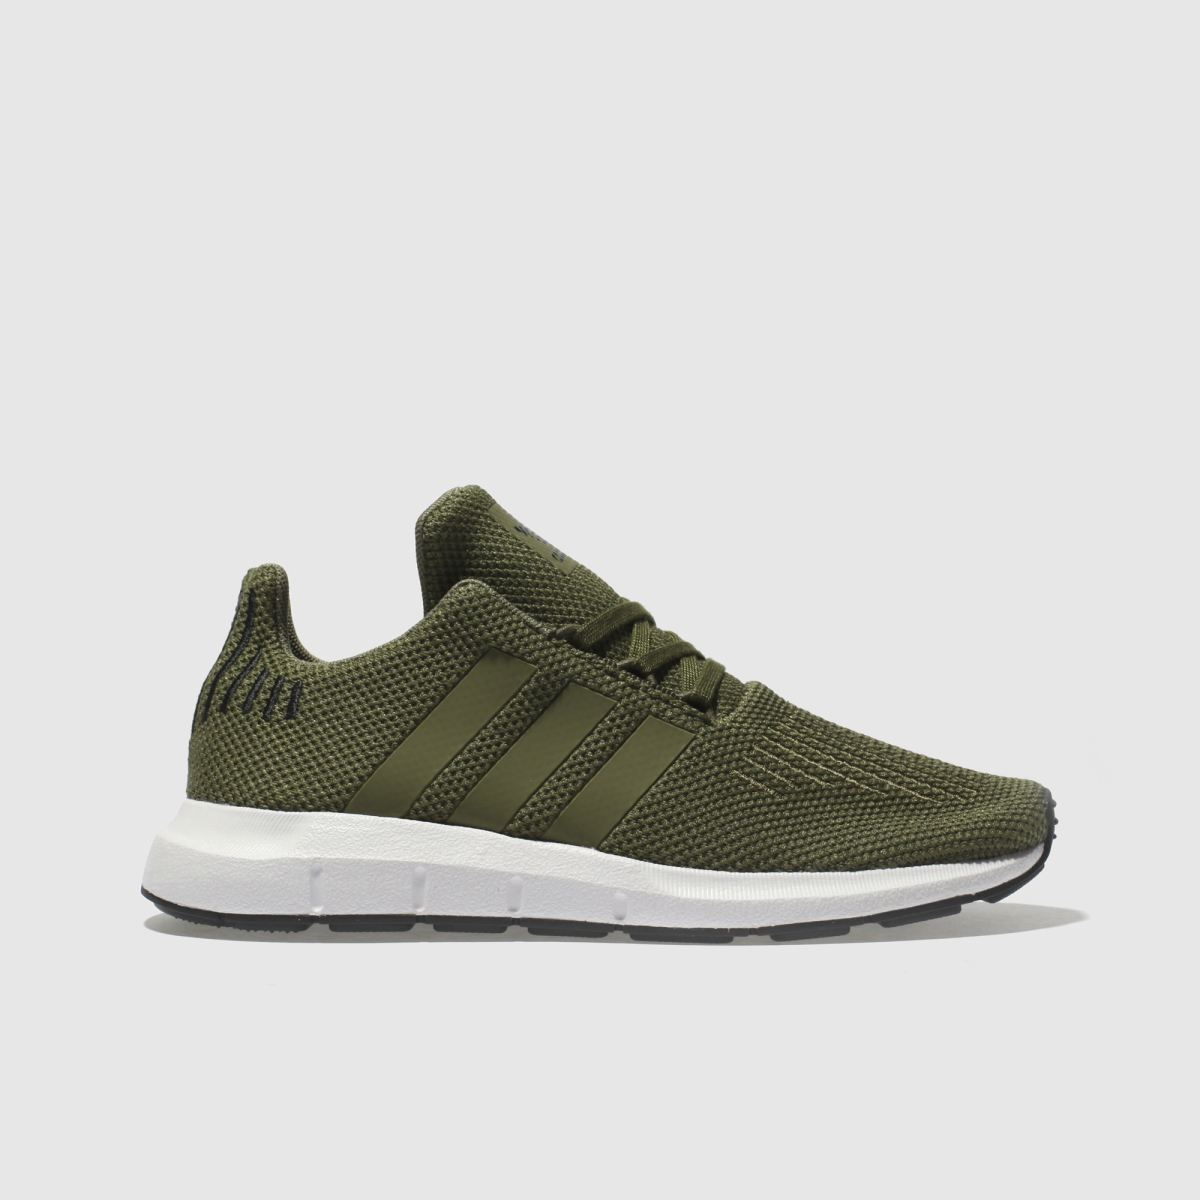 977741252 Adidas Khaki Swift Run Trainers Junior - £43.00 - Bullring   Grand Central